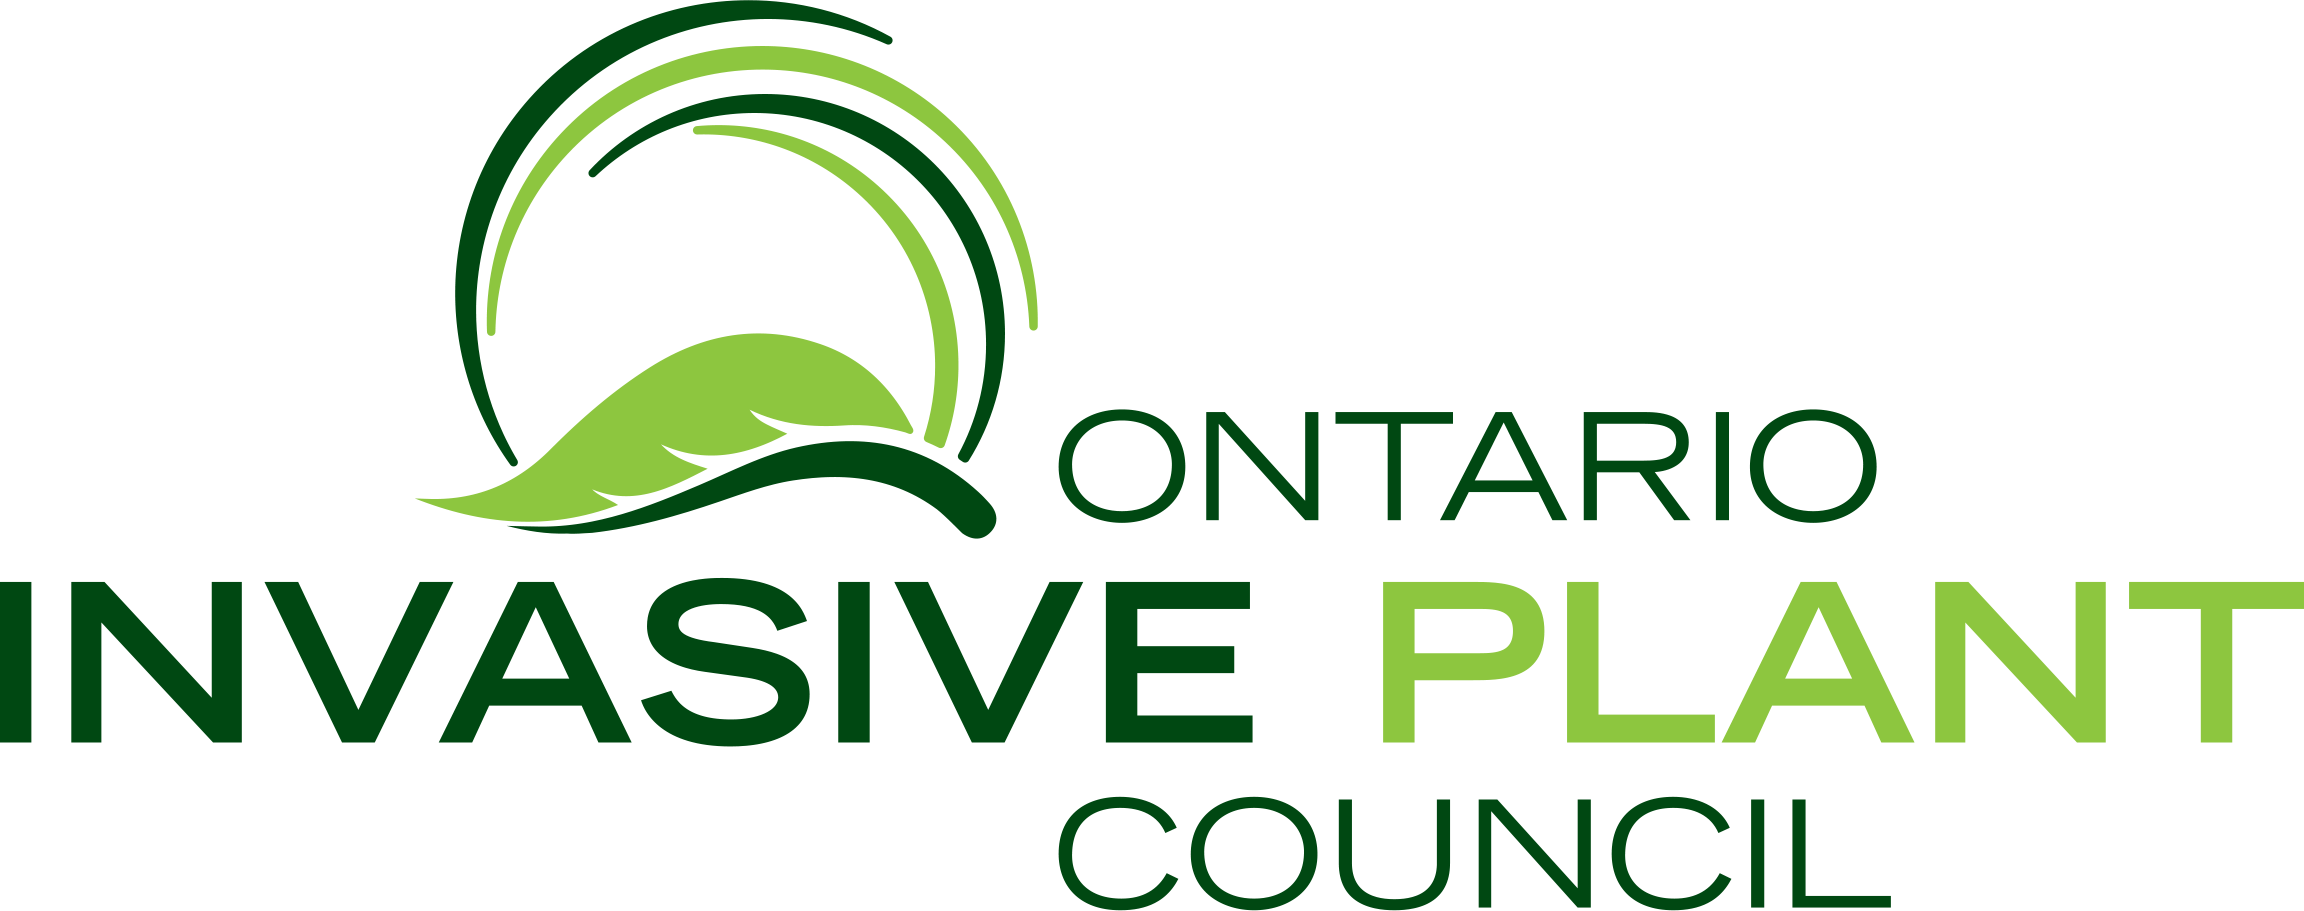 Ontario Invasive Plant Council logo